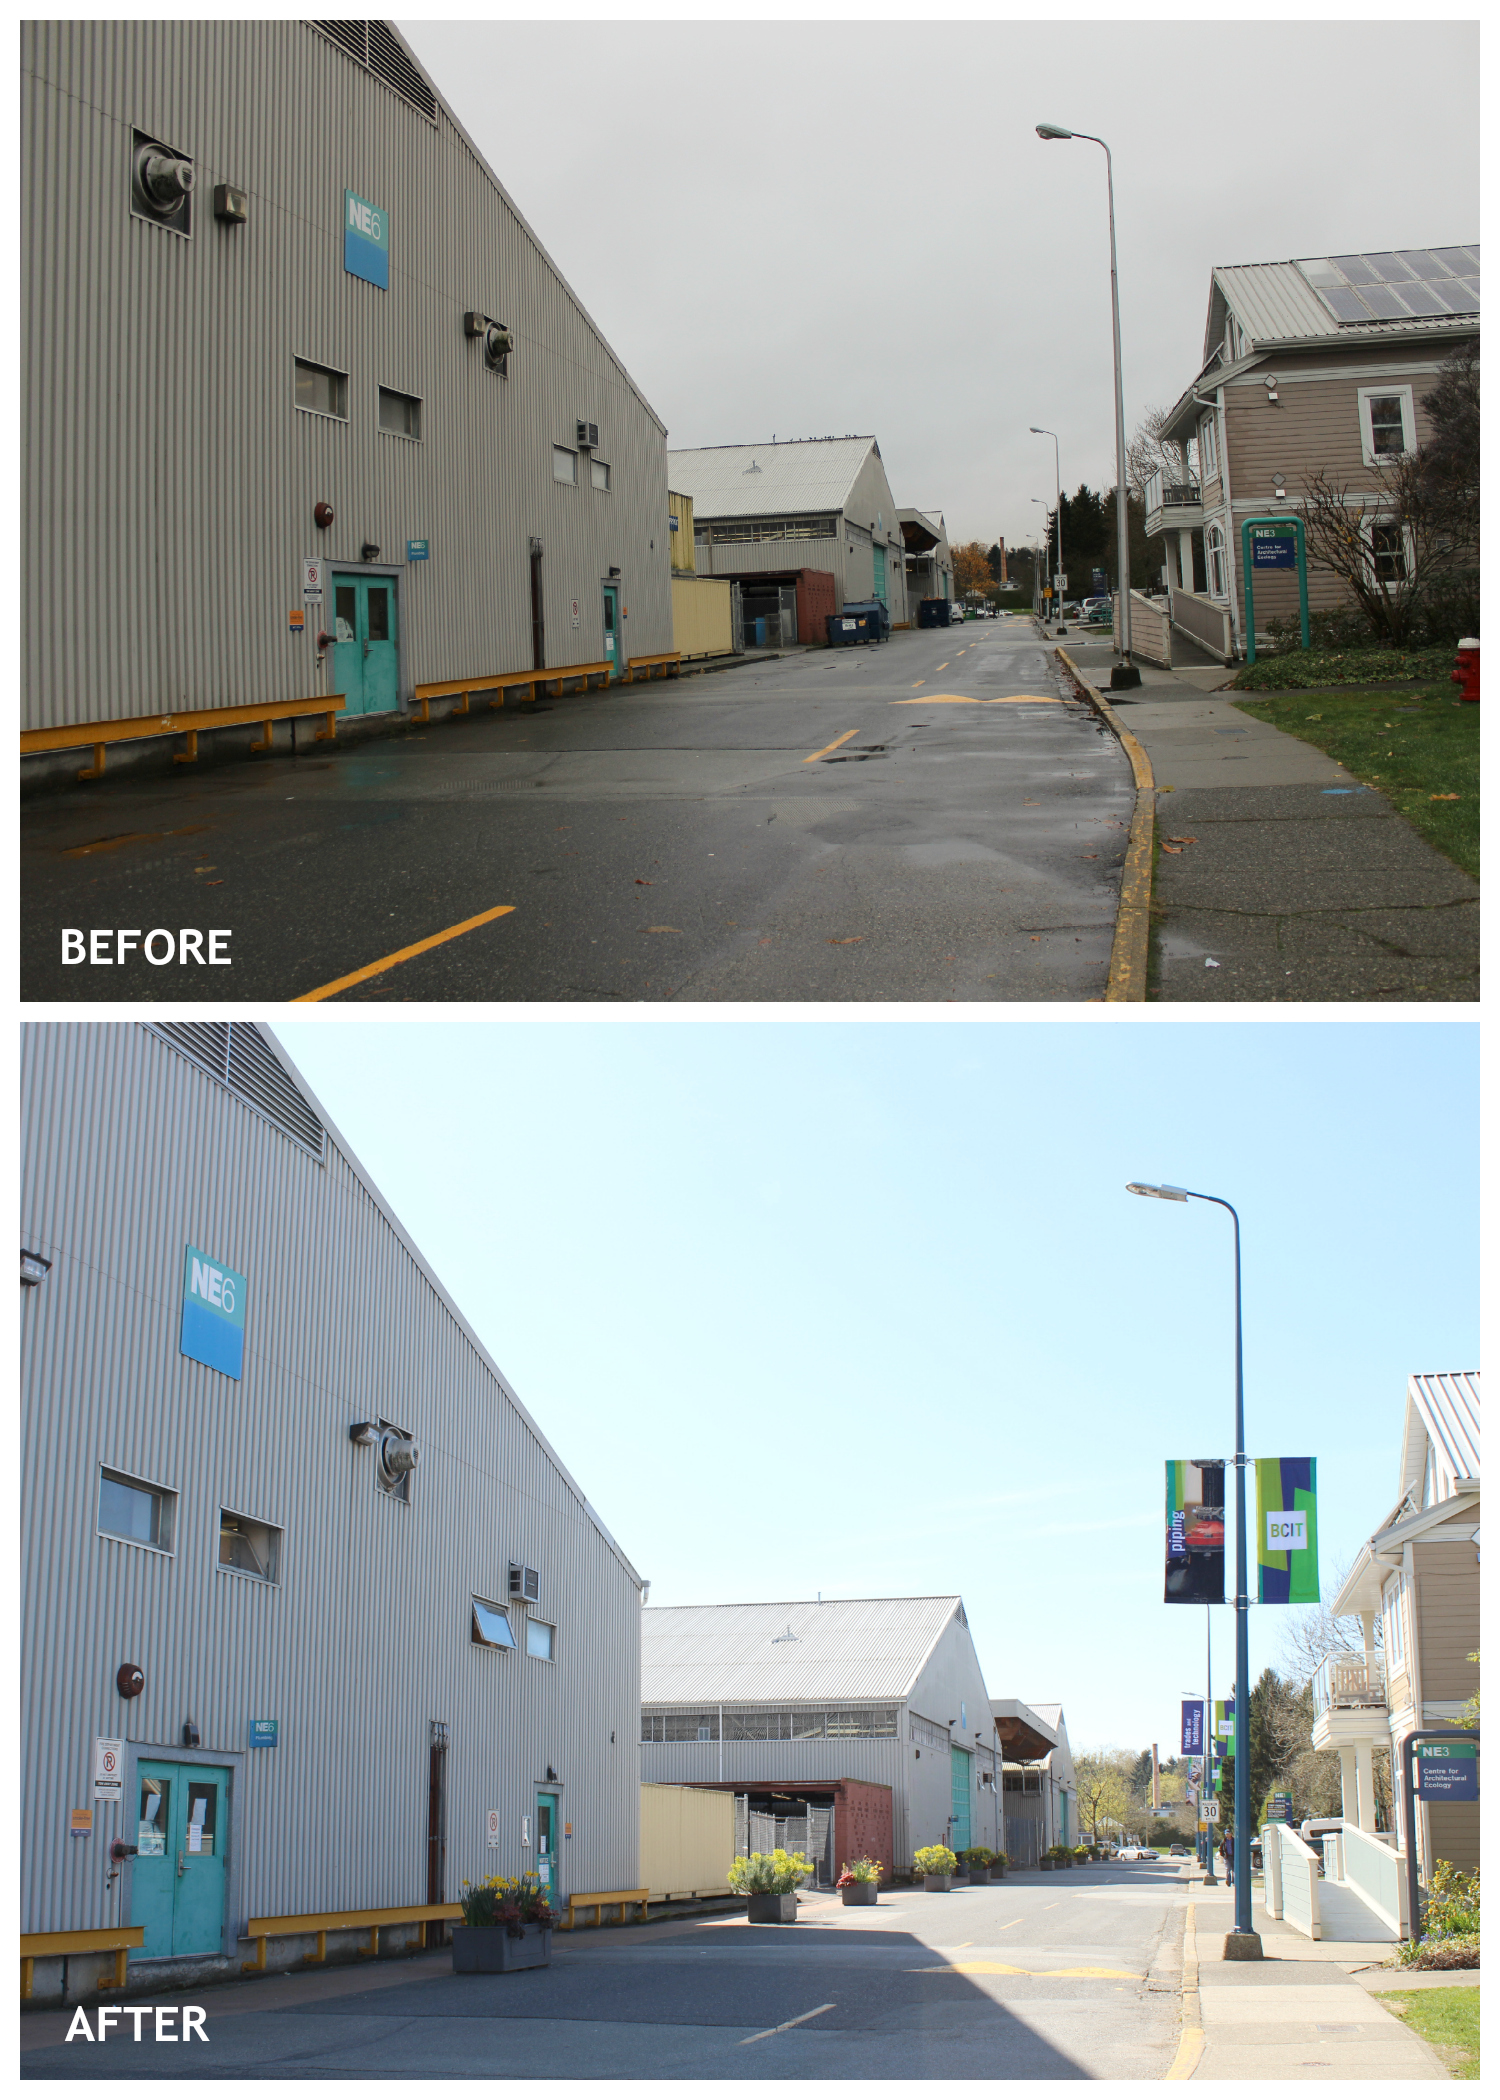 Smith Street Before & After